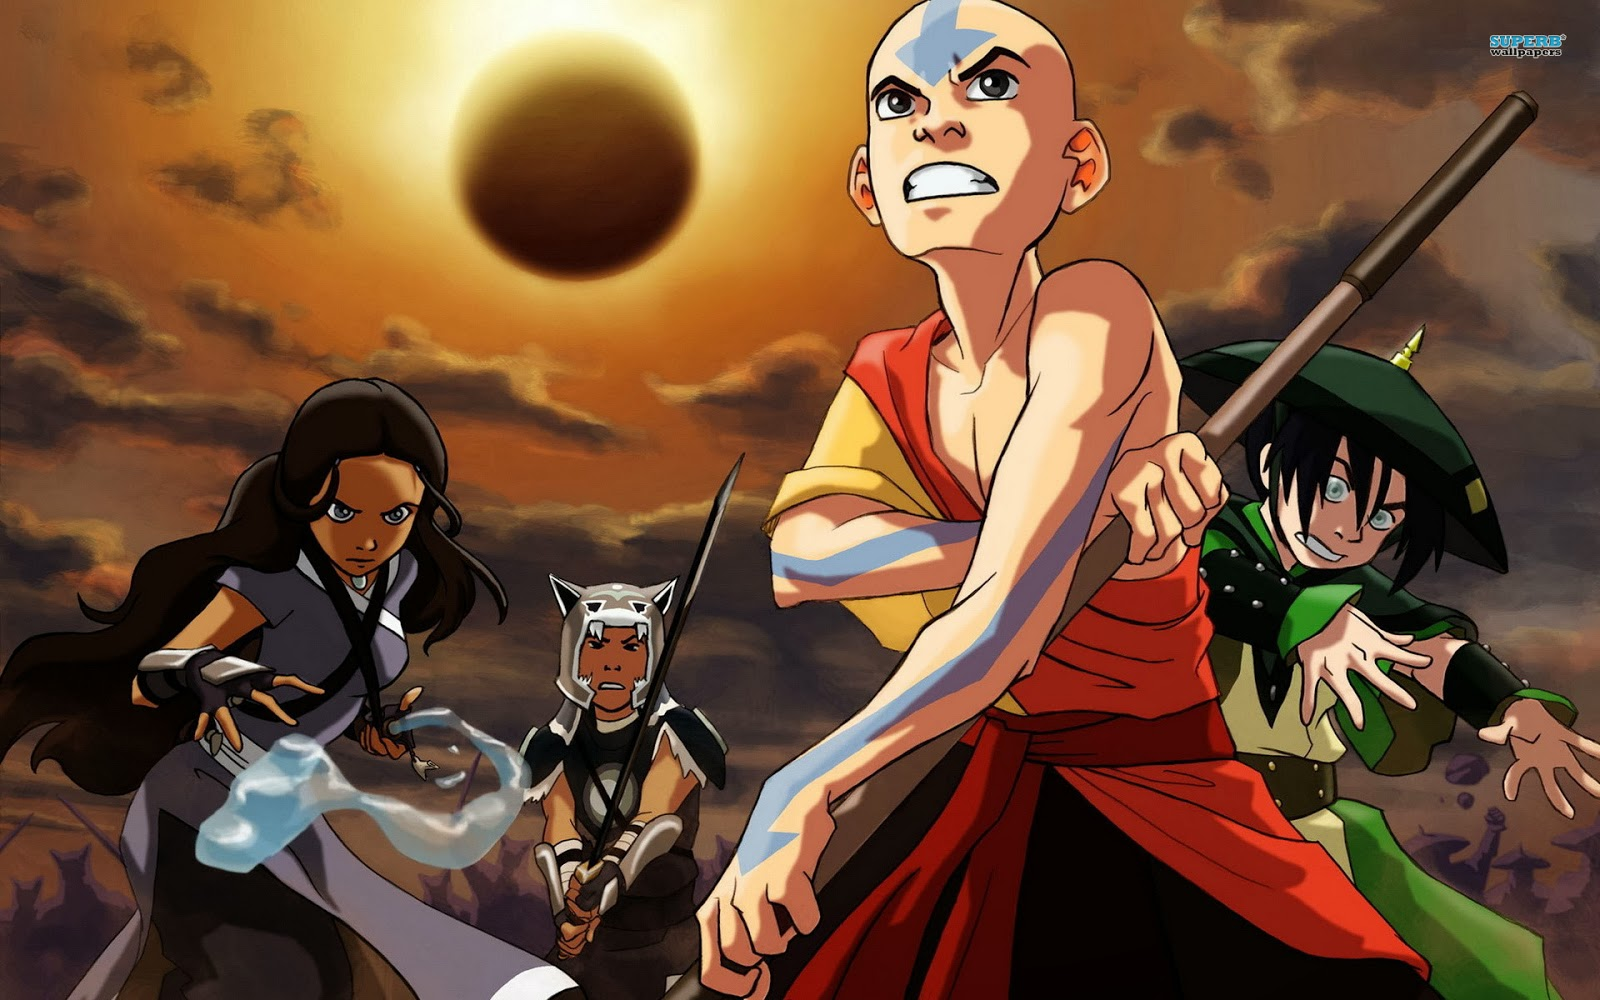 Gambar Avatar The Legend of Aang